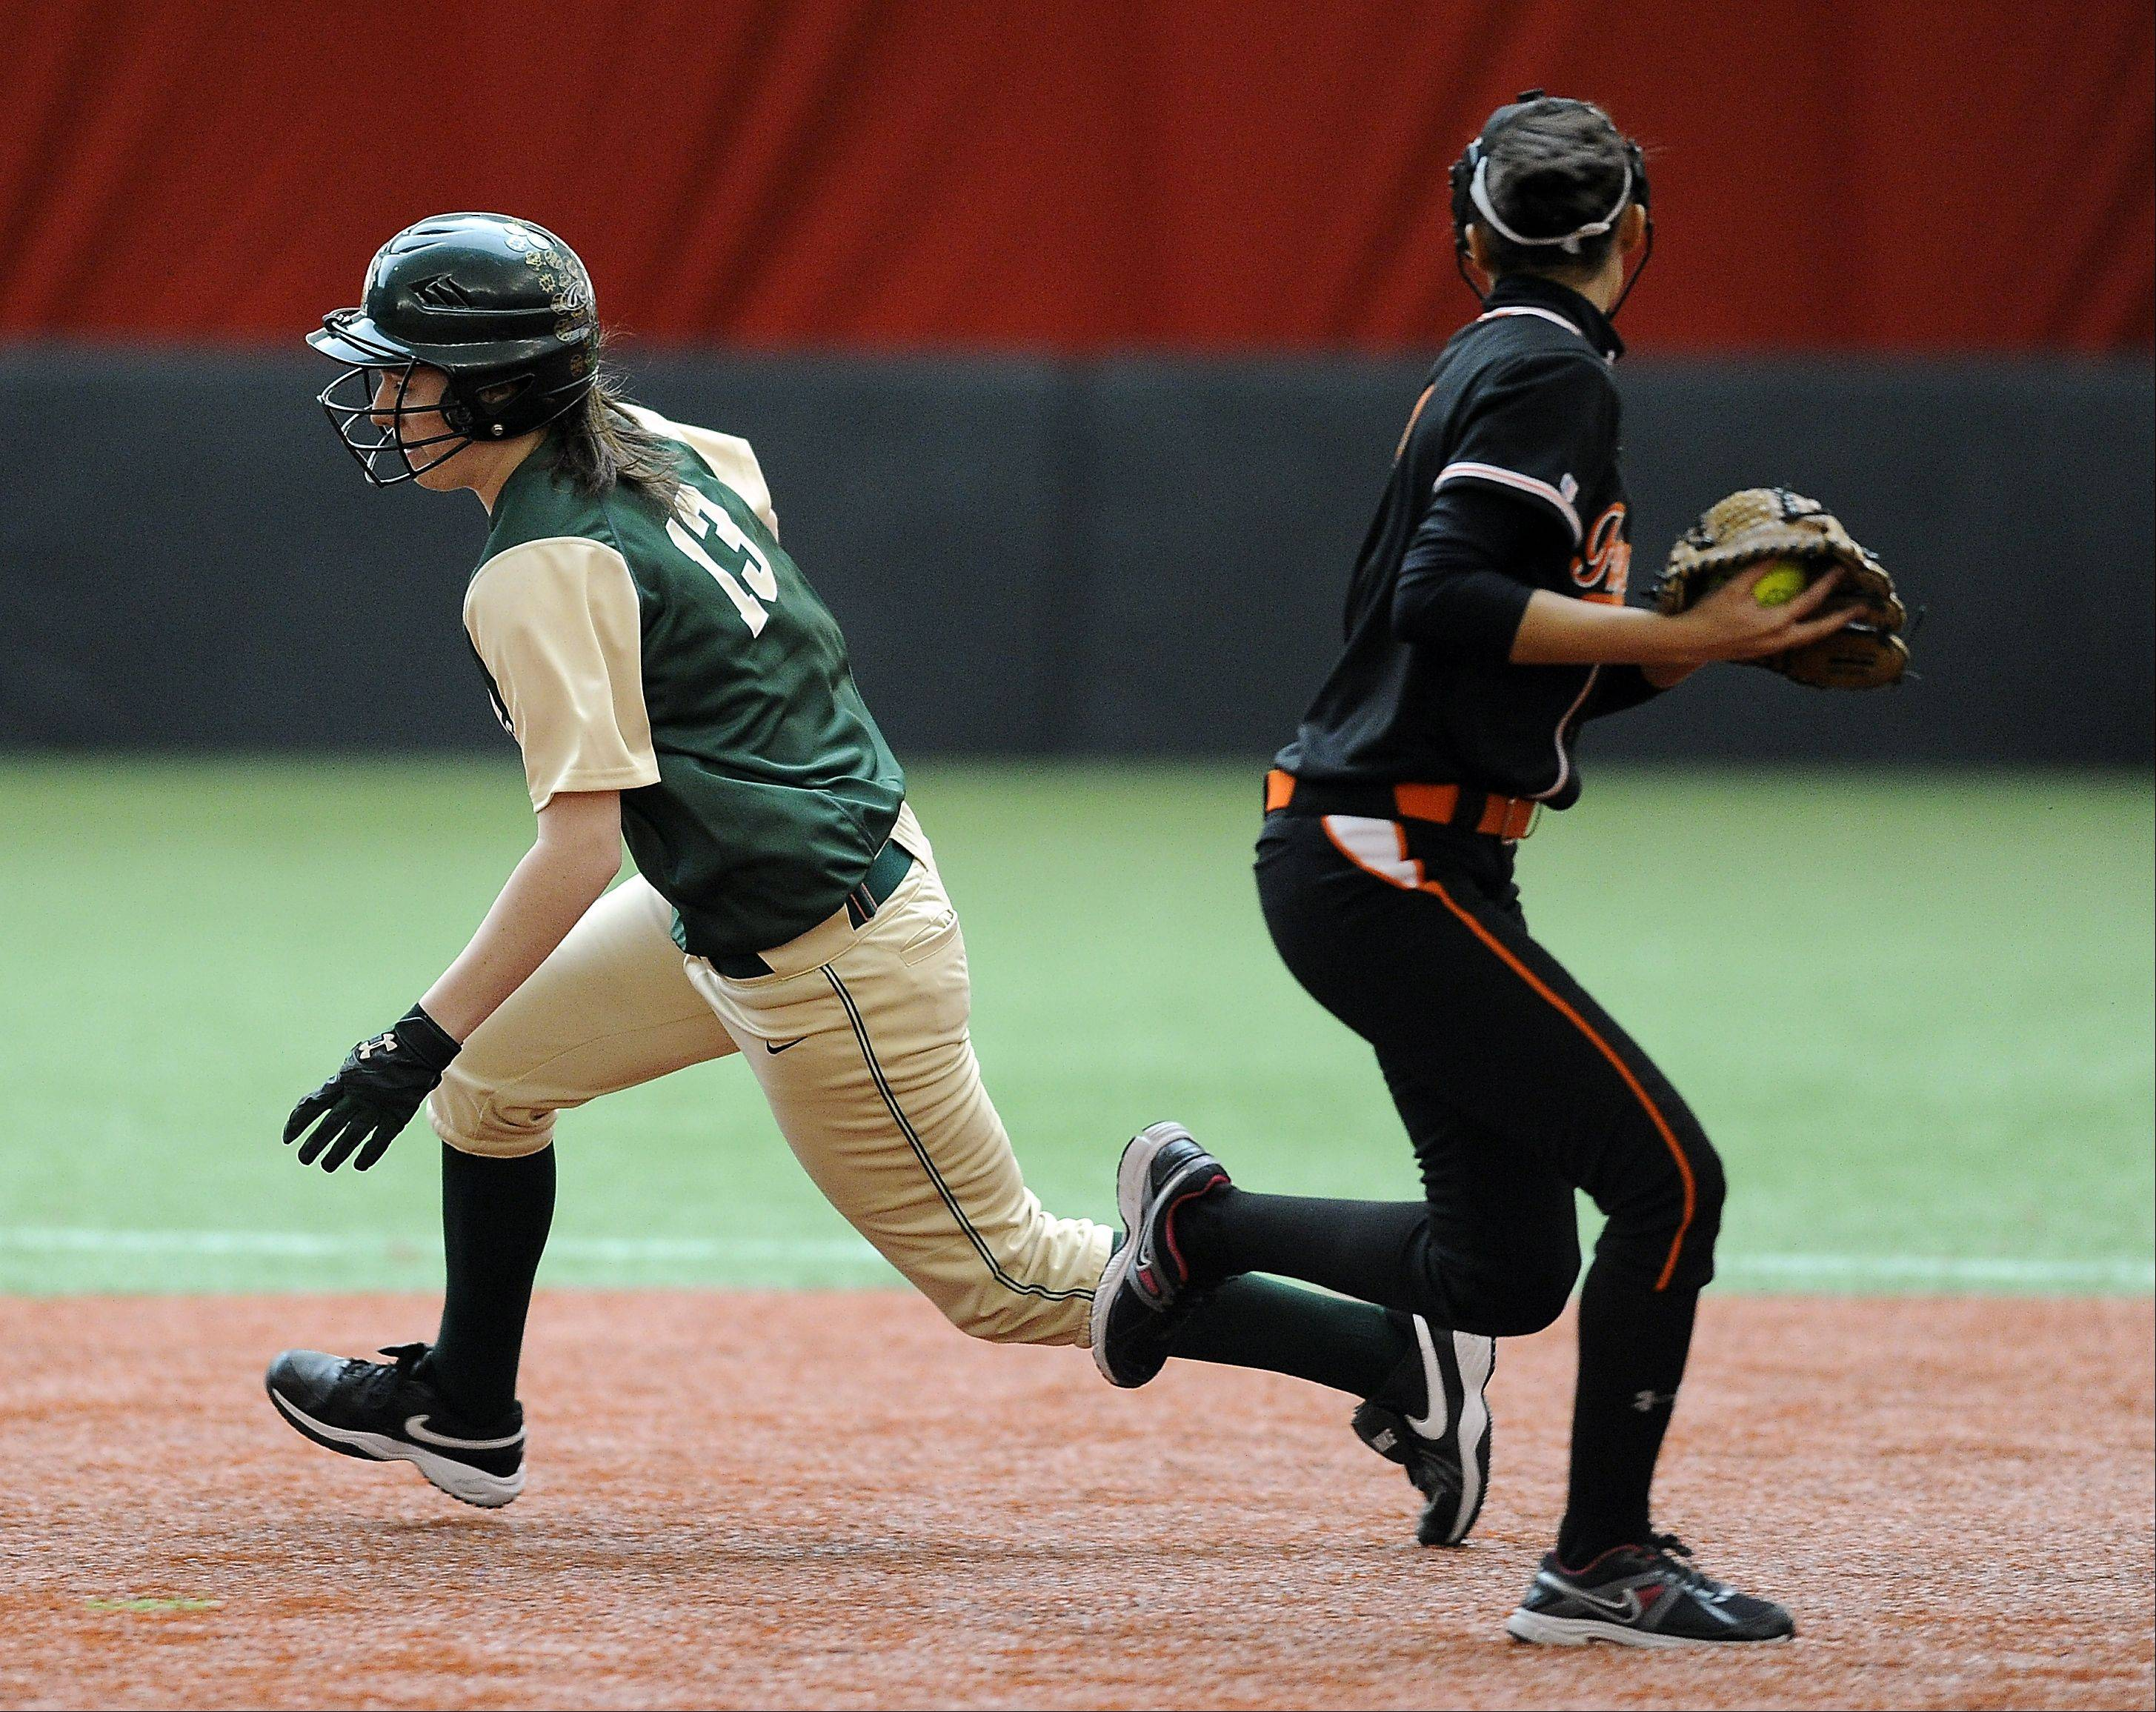 St. Edward's Ryann Scully steals second past Freeport's Jordan Flack in the first inning in Rosemont on Monday.